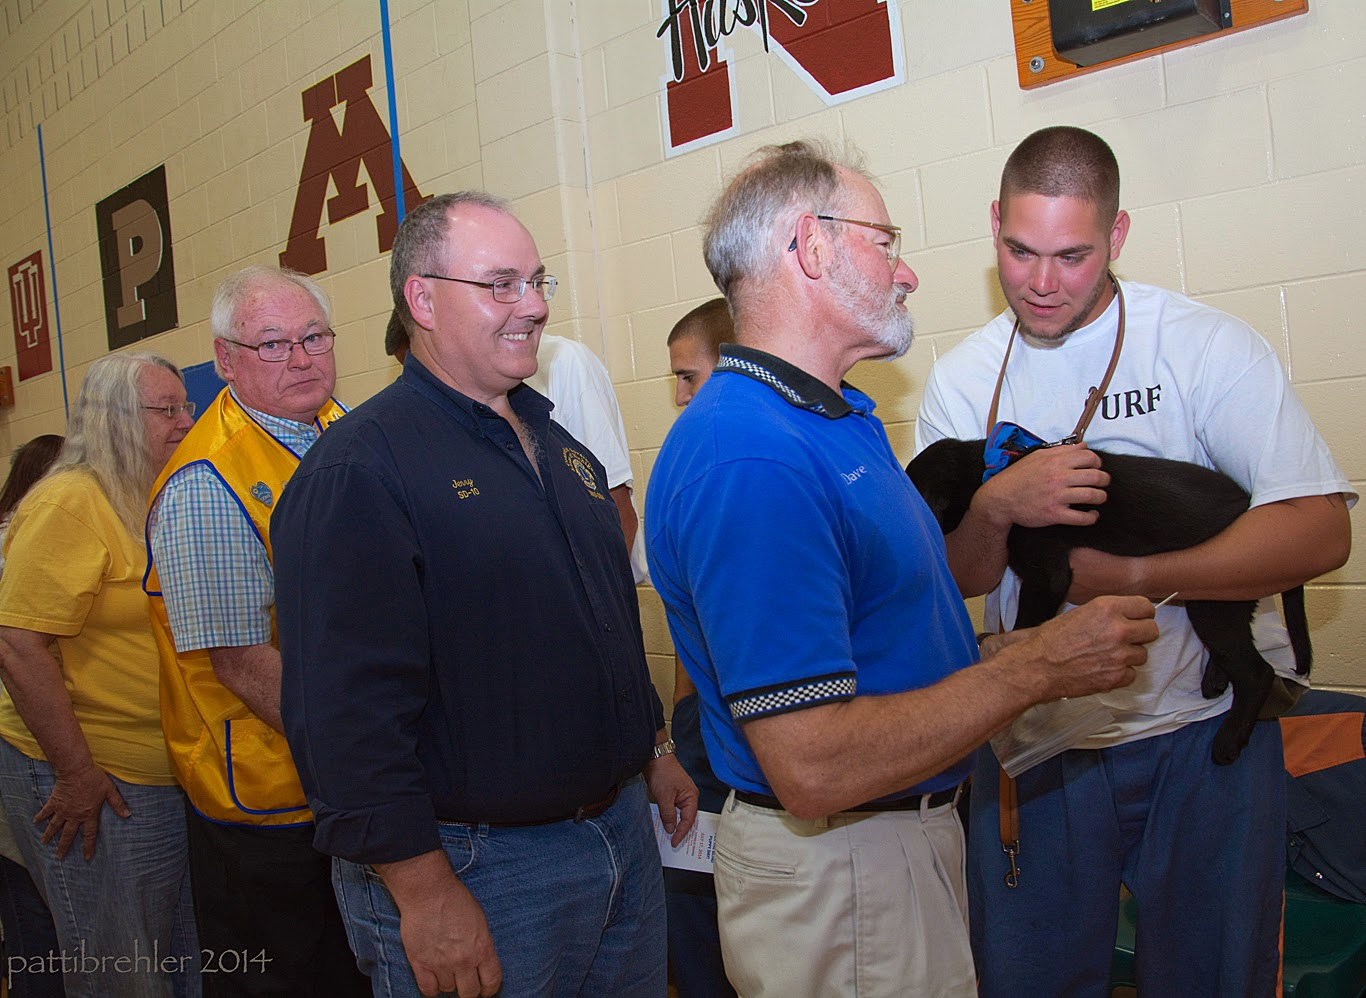 One woman and three men are standing in line, talking to the prisoners that are standing against the wall in the gym. The inmate on the right is wearing blue pants and a white t-shirt. He is holding a small black lab puppy and leaning toward another man and listening. The woman, wearing a yellow shirt, is on the far left, followed by a man wearing a yellow vest, then a man wearing blue jeans and a blue shirt, then a bearded man wearing khakis and a royal blue shirt.